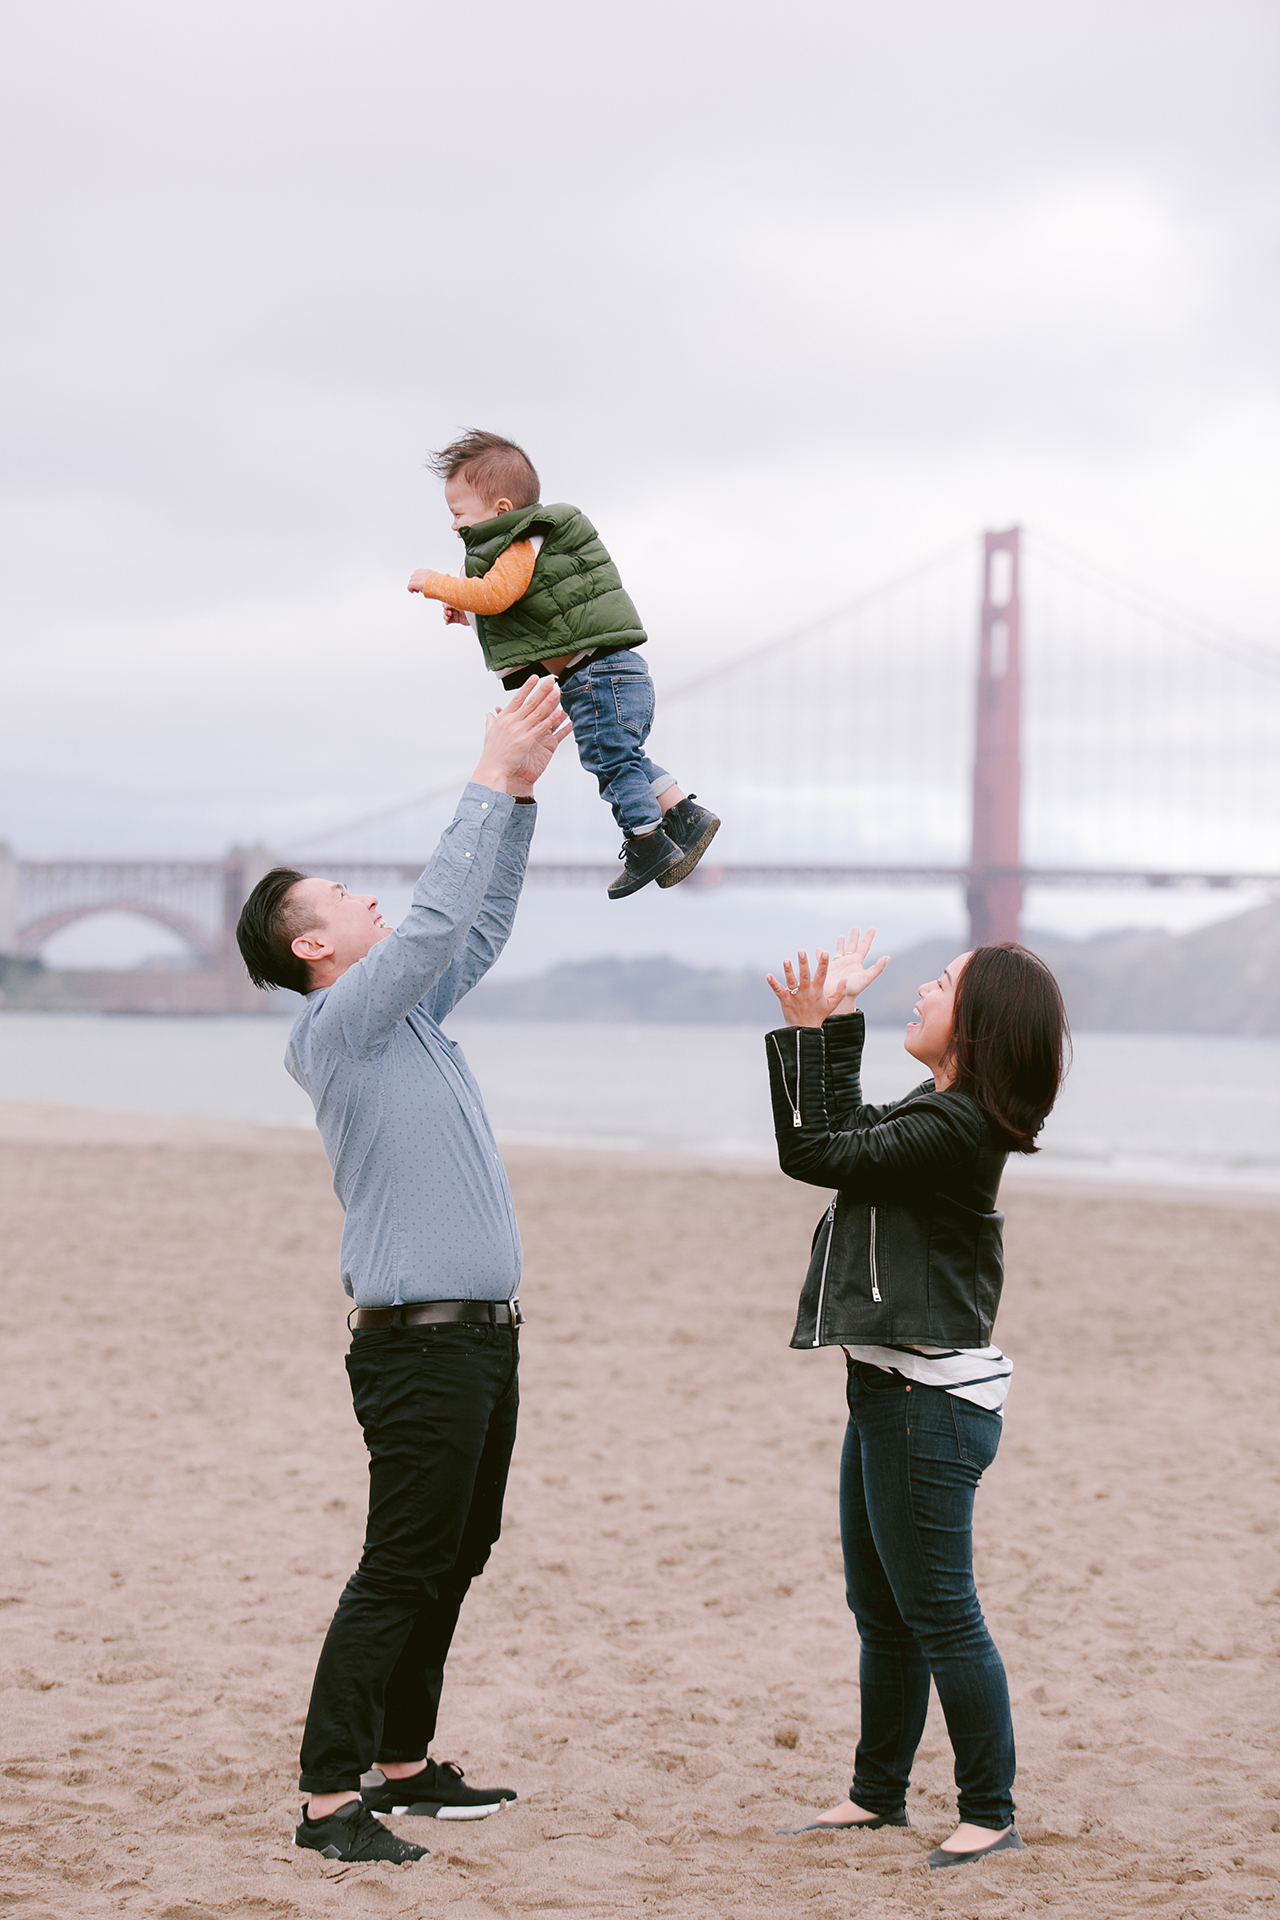 San_Francisco_Children_Family_Portrait_006.jpg